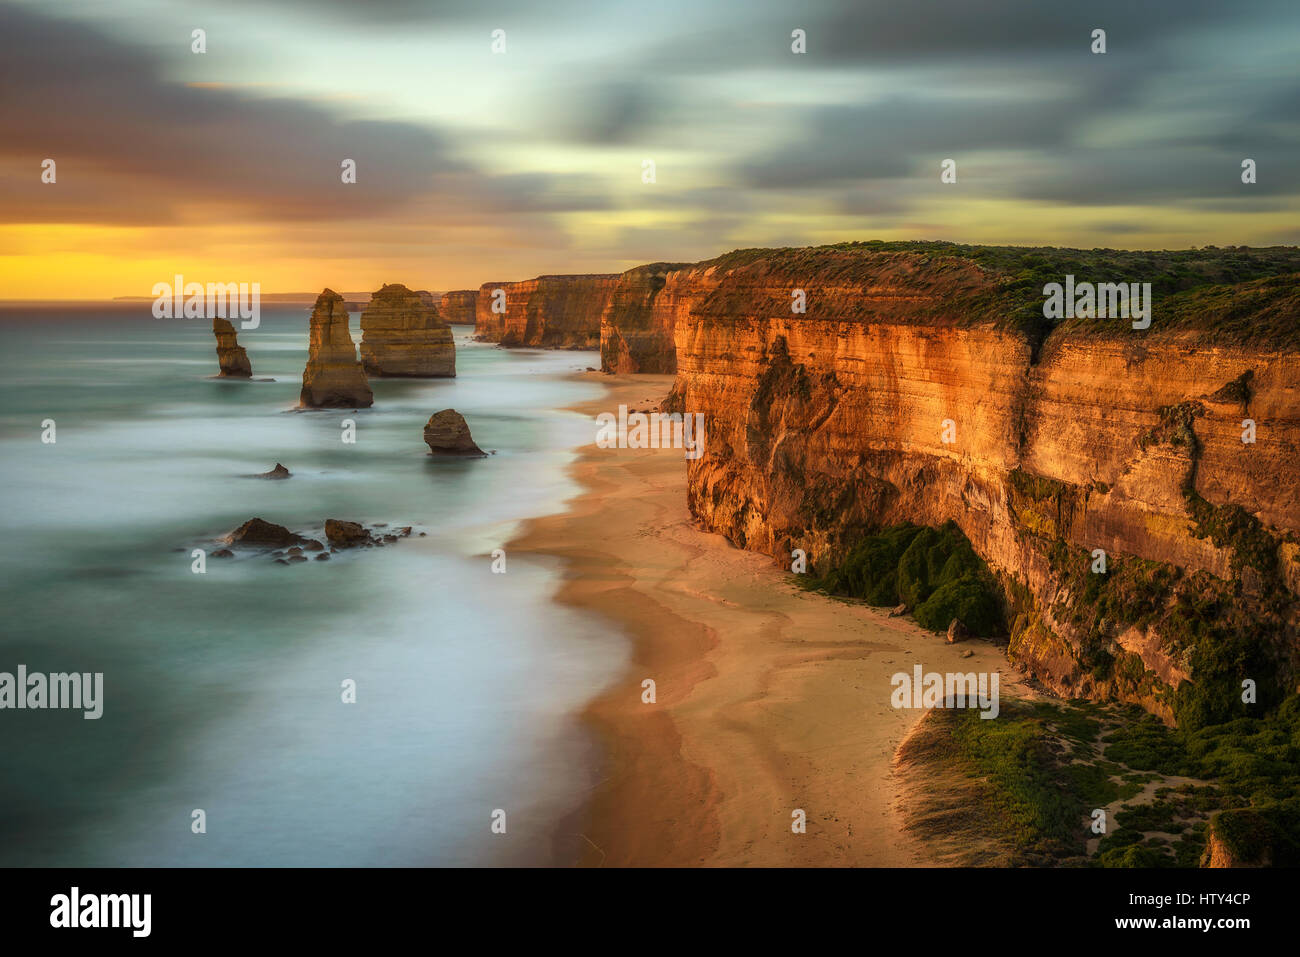 Sunset over The Twelve Apostles along the famous Great Ocean Road in Victoria, Australia, near Port Campbell. Long - Stock Image